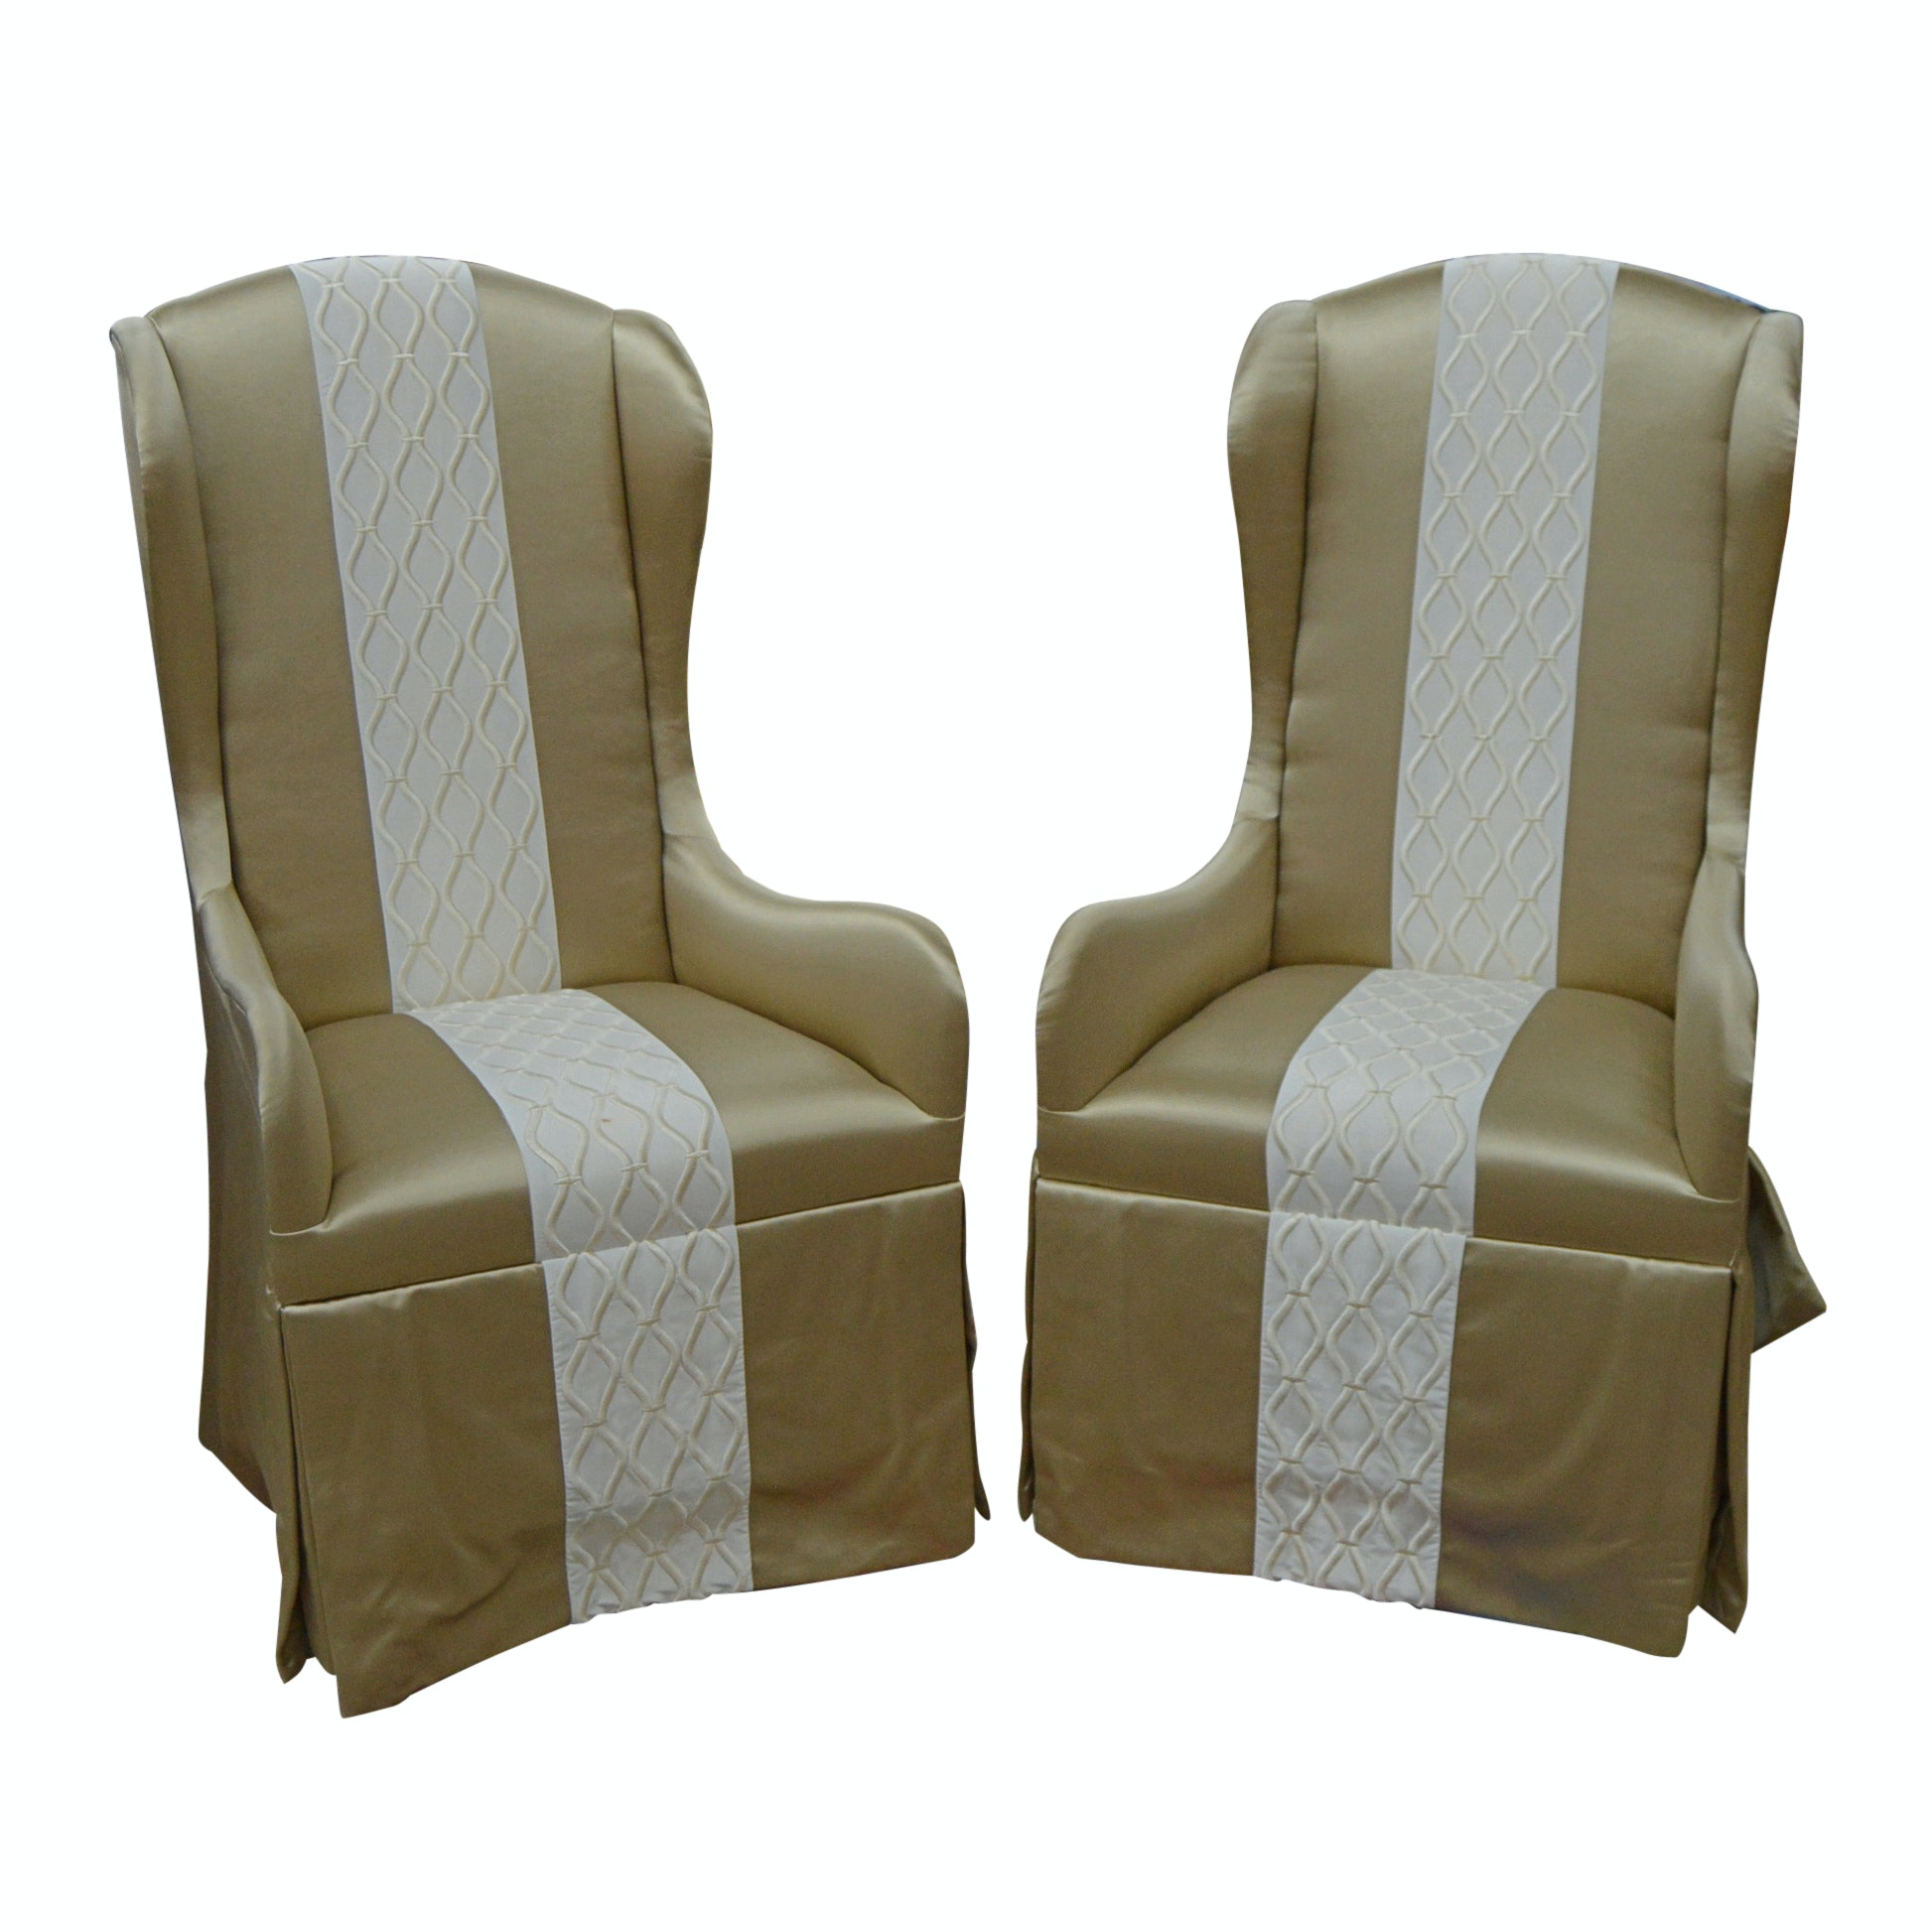 Pair of Skirted Wingback Armchairs by Century Furniture